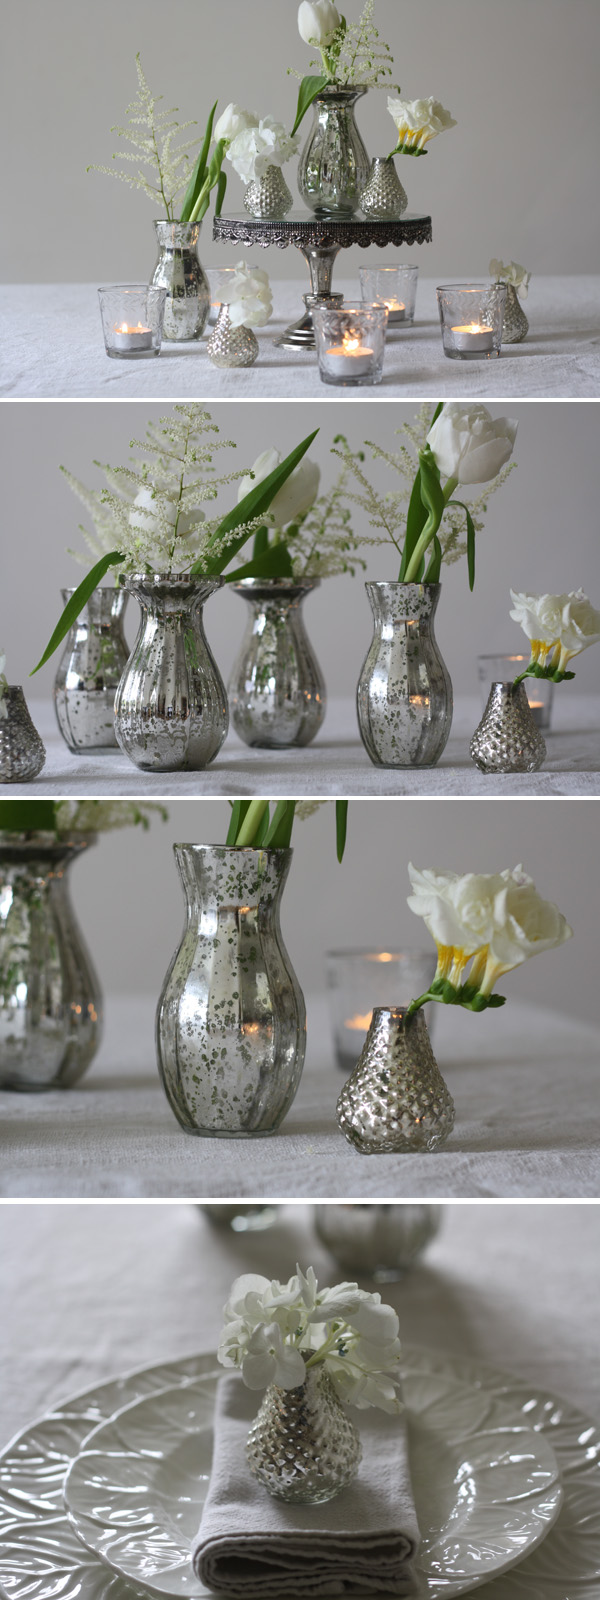 mercury silver glass vases small bud vases for wedding centrepieces wedding table decorations